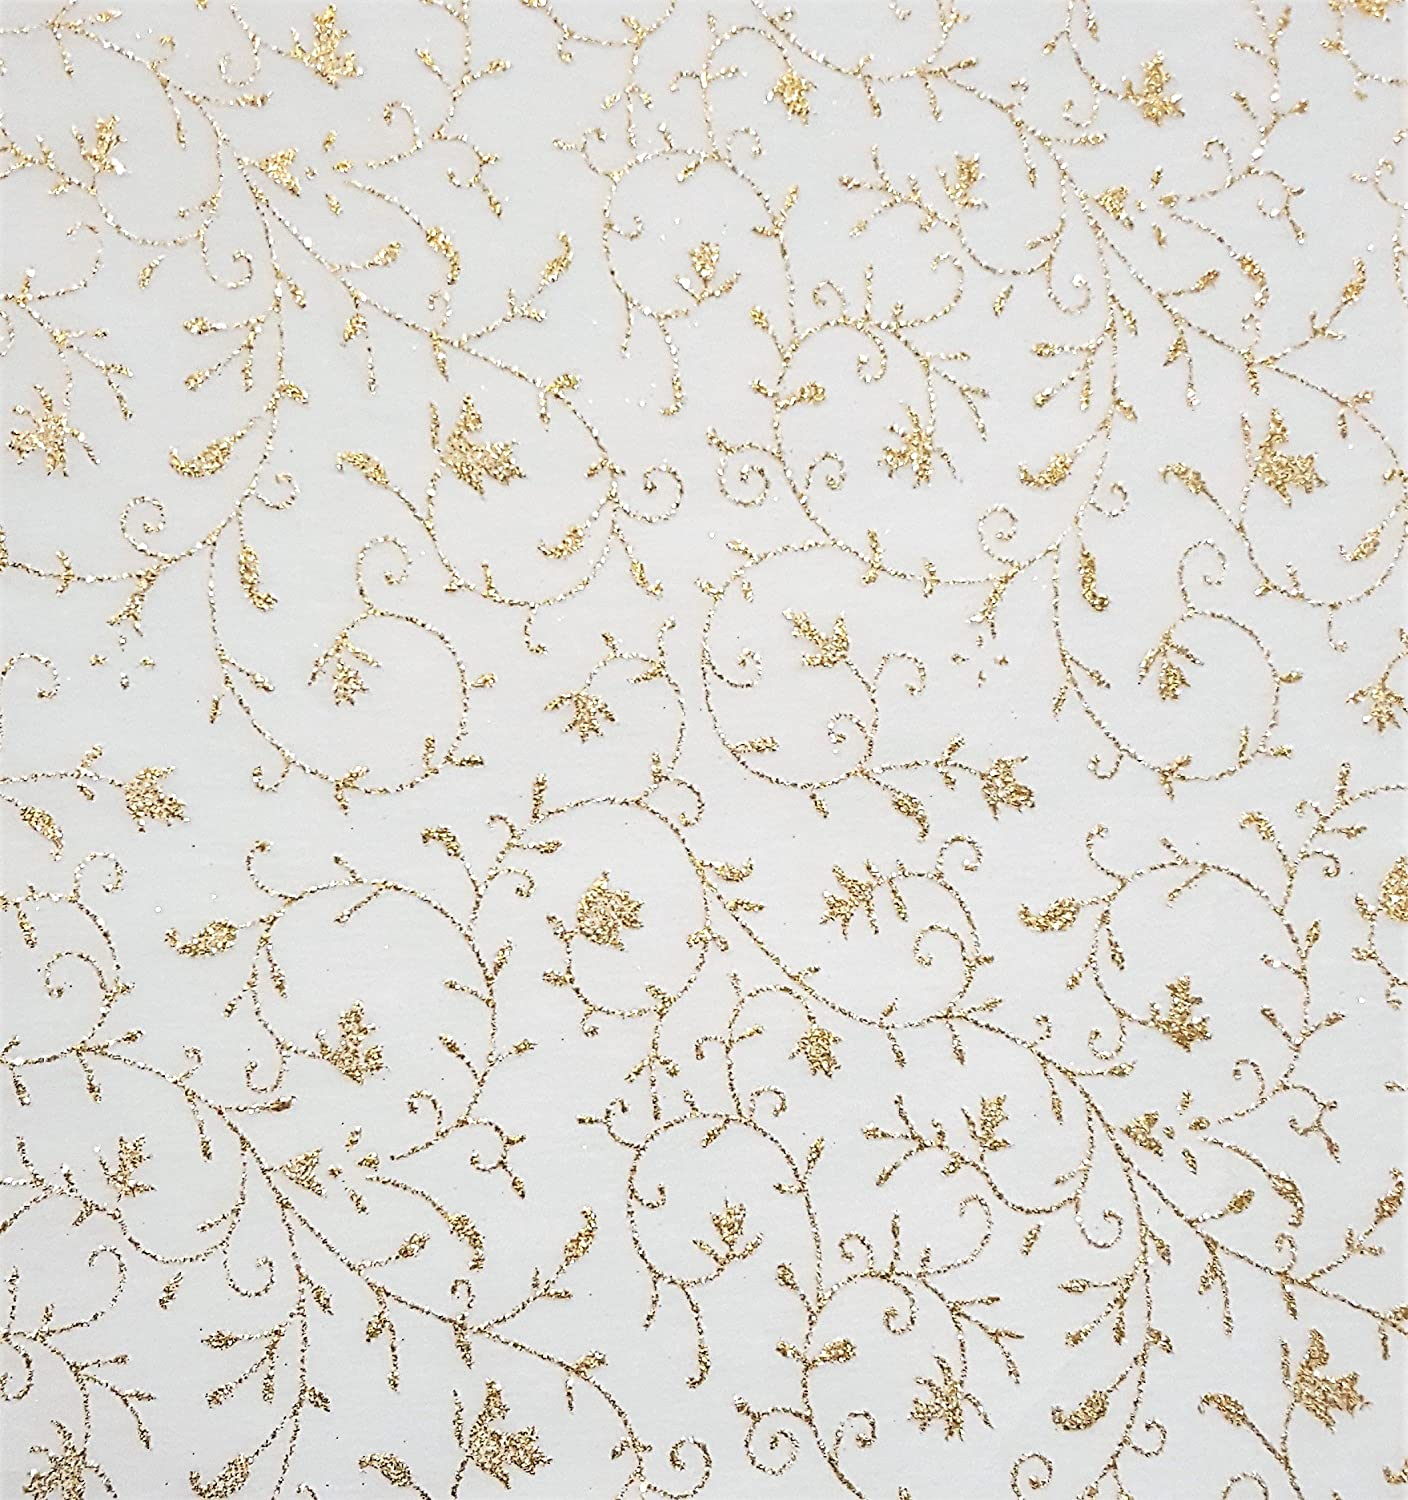 A4 GLITTER PATTERNED White-Gold Floral Decorative 5 sheets D I Y Wedding Crafts Glitterati